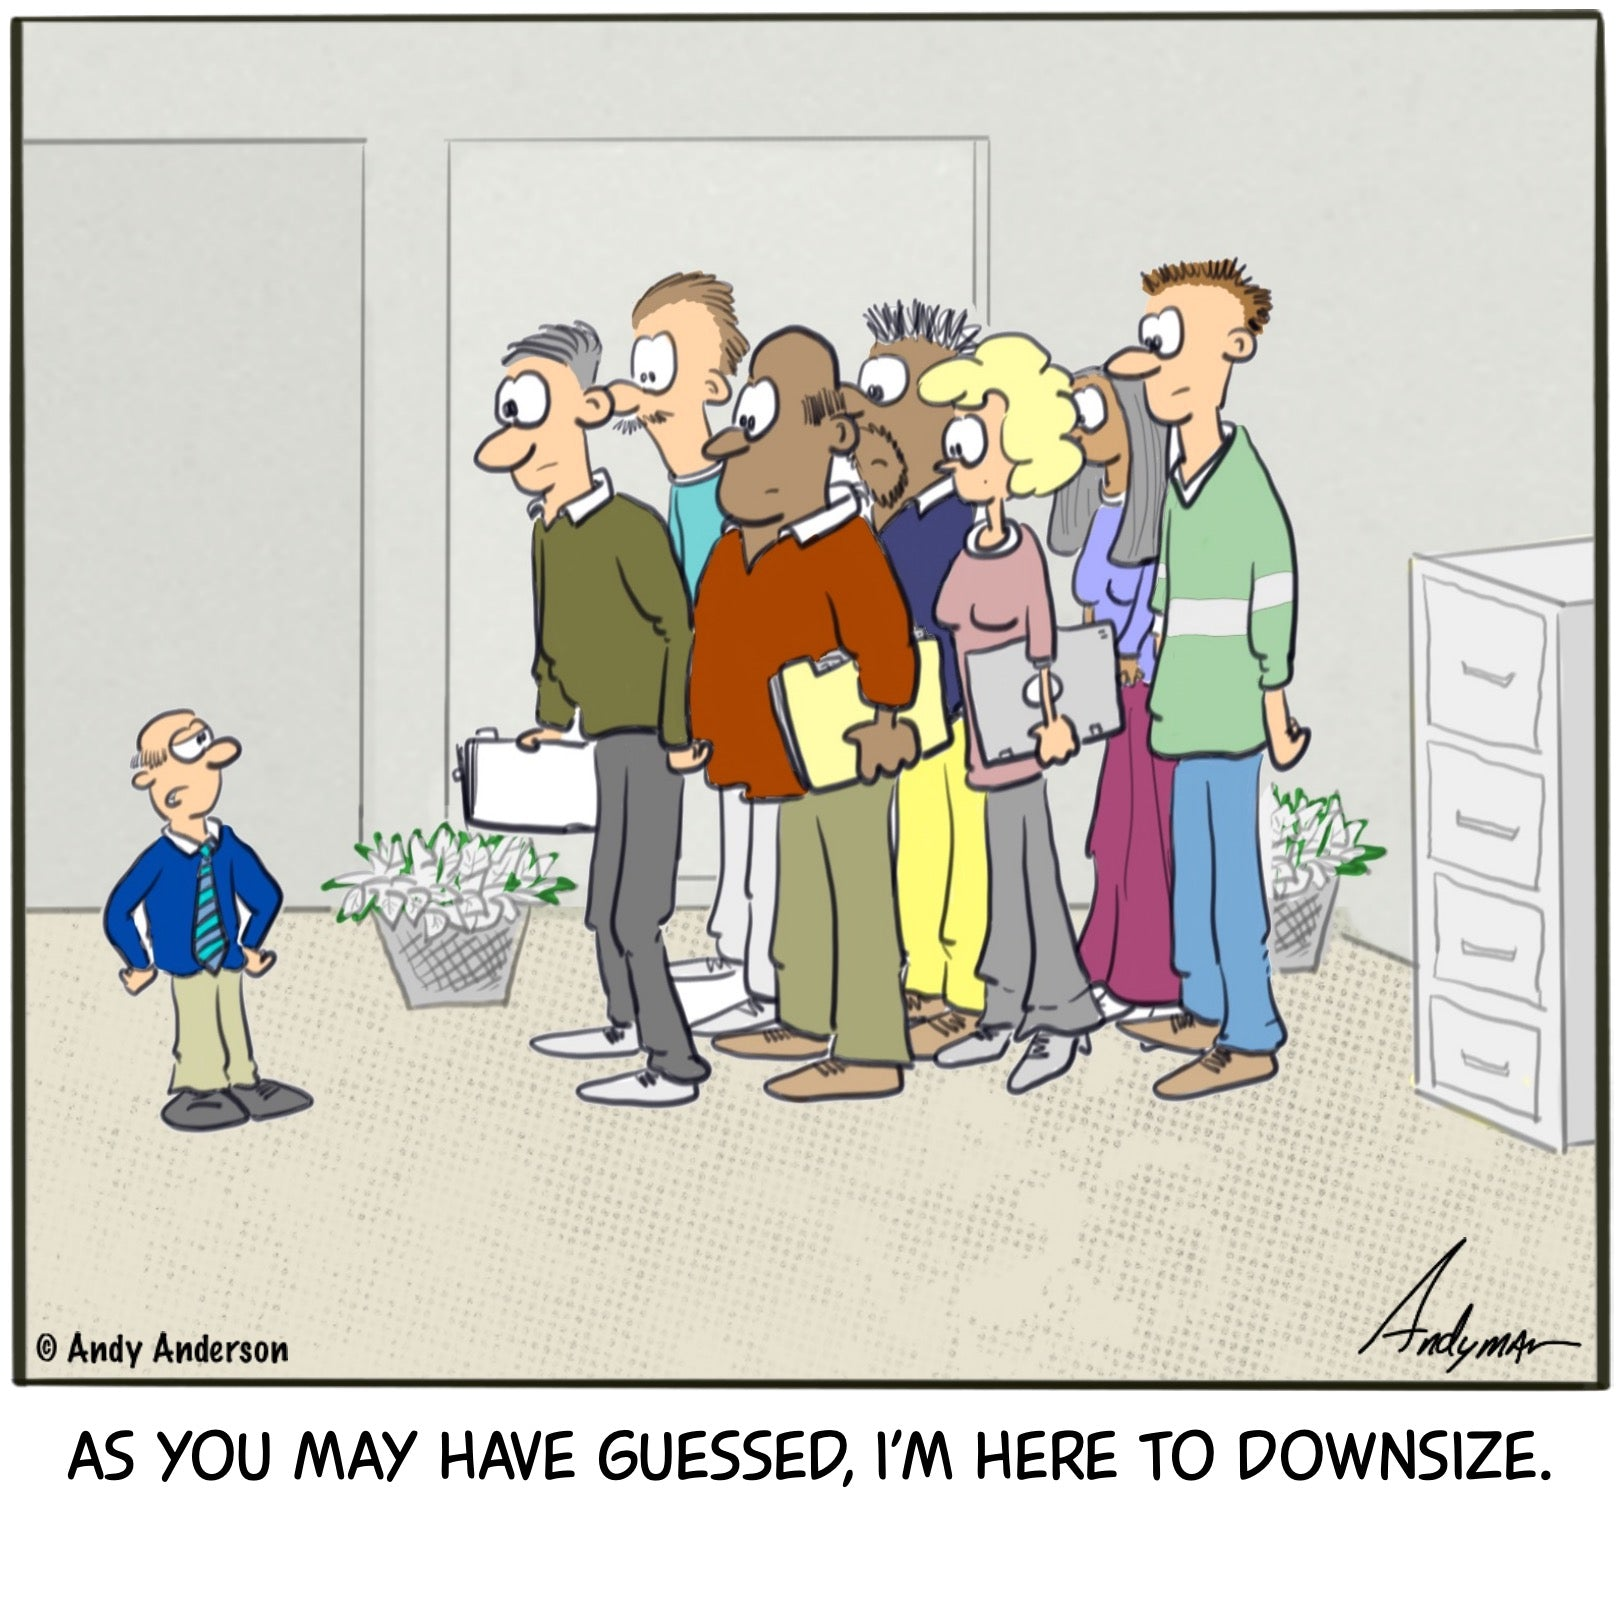 Here to downsize cartoon by Andy Anderson